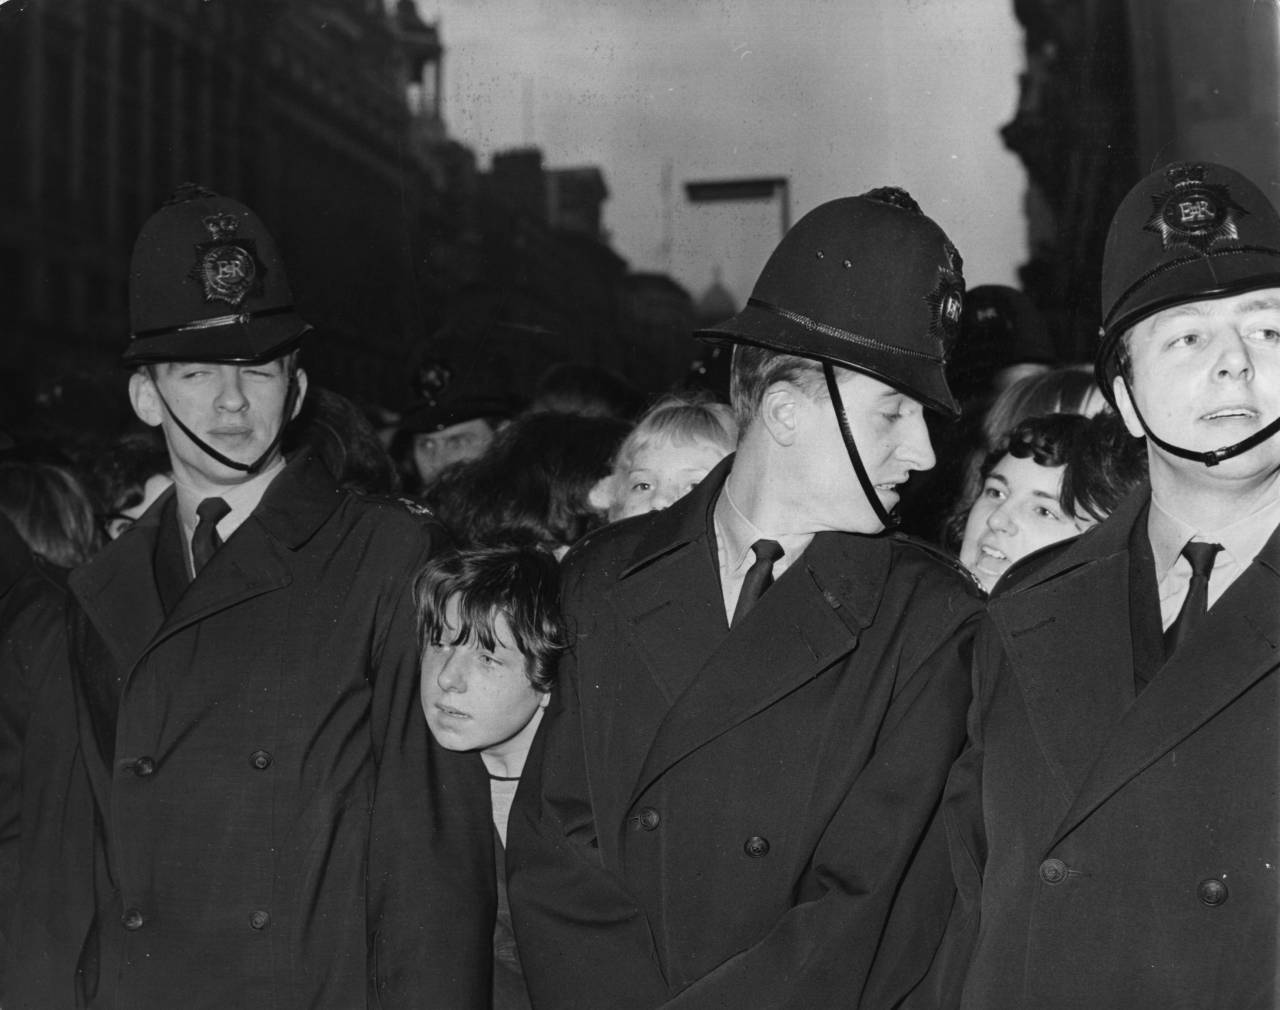 20th March 1964: A young Beatles fan pushes her head between the shoulders of two policemen on duty outside Television House, Kingsway, London, where the Beatles are expected to appear on the ITV pop programme 'Ready, Steady, Go!' (Photo by Kent Gavin/Keystone/Getty Images)